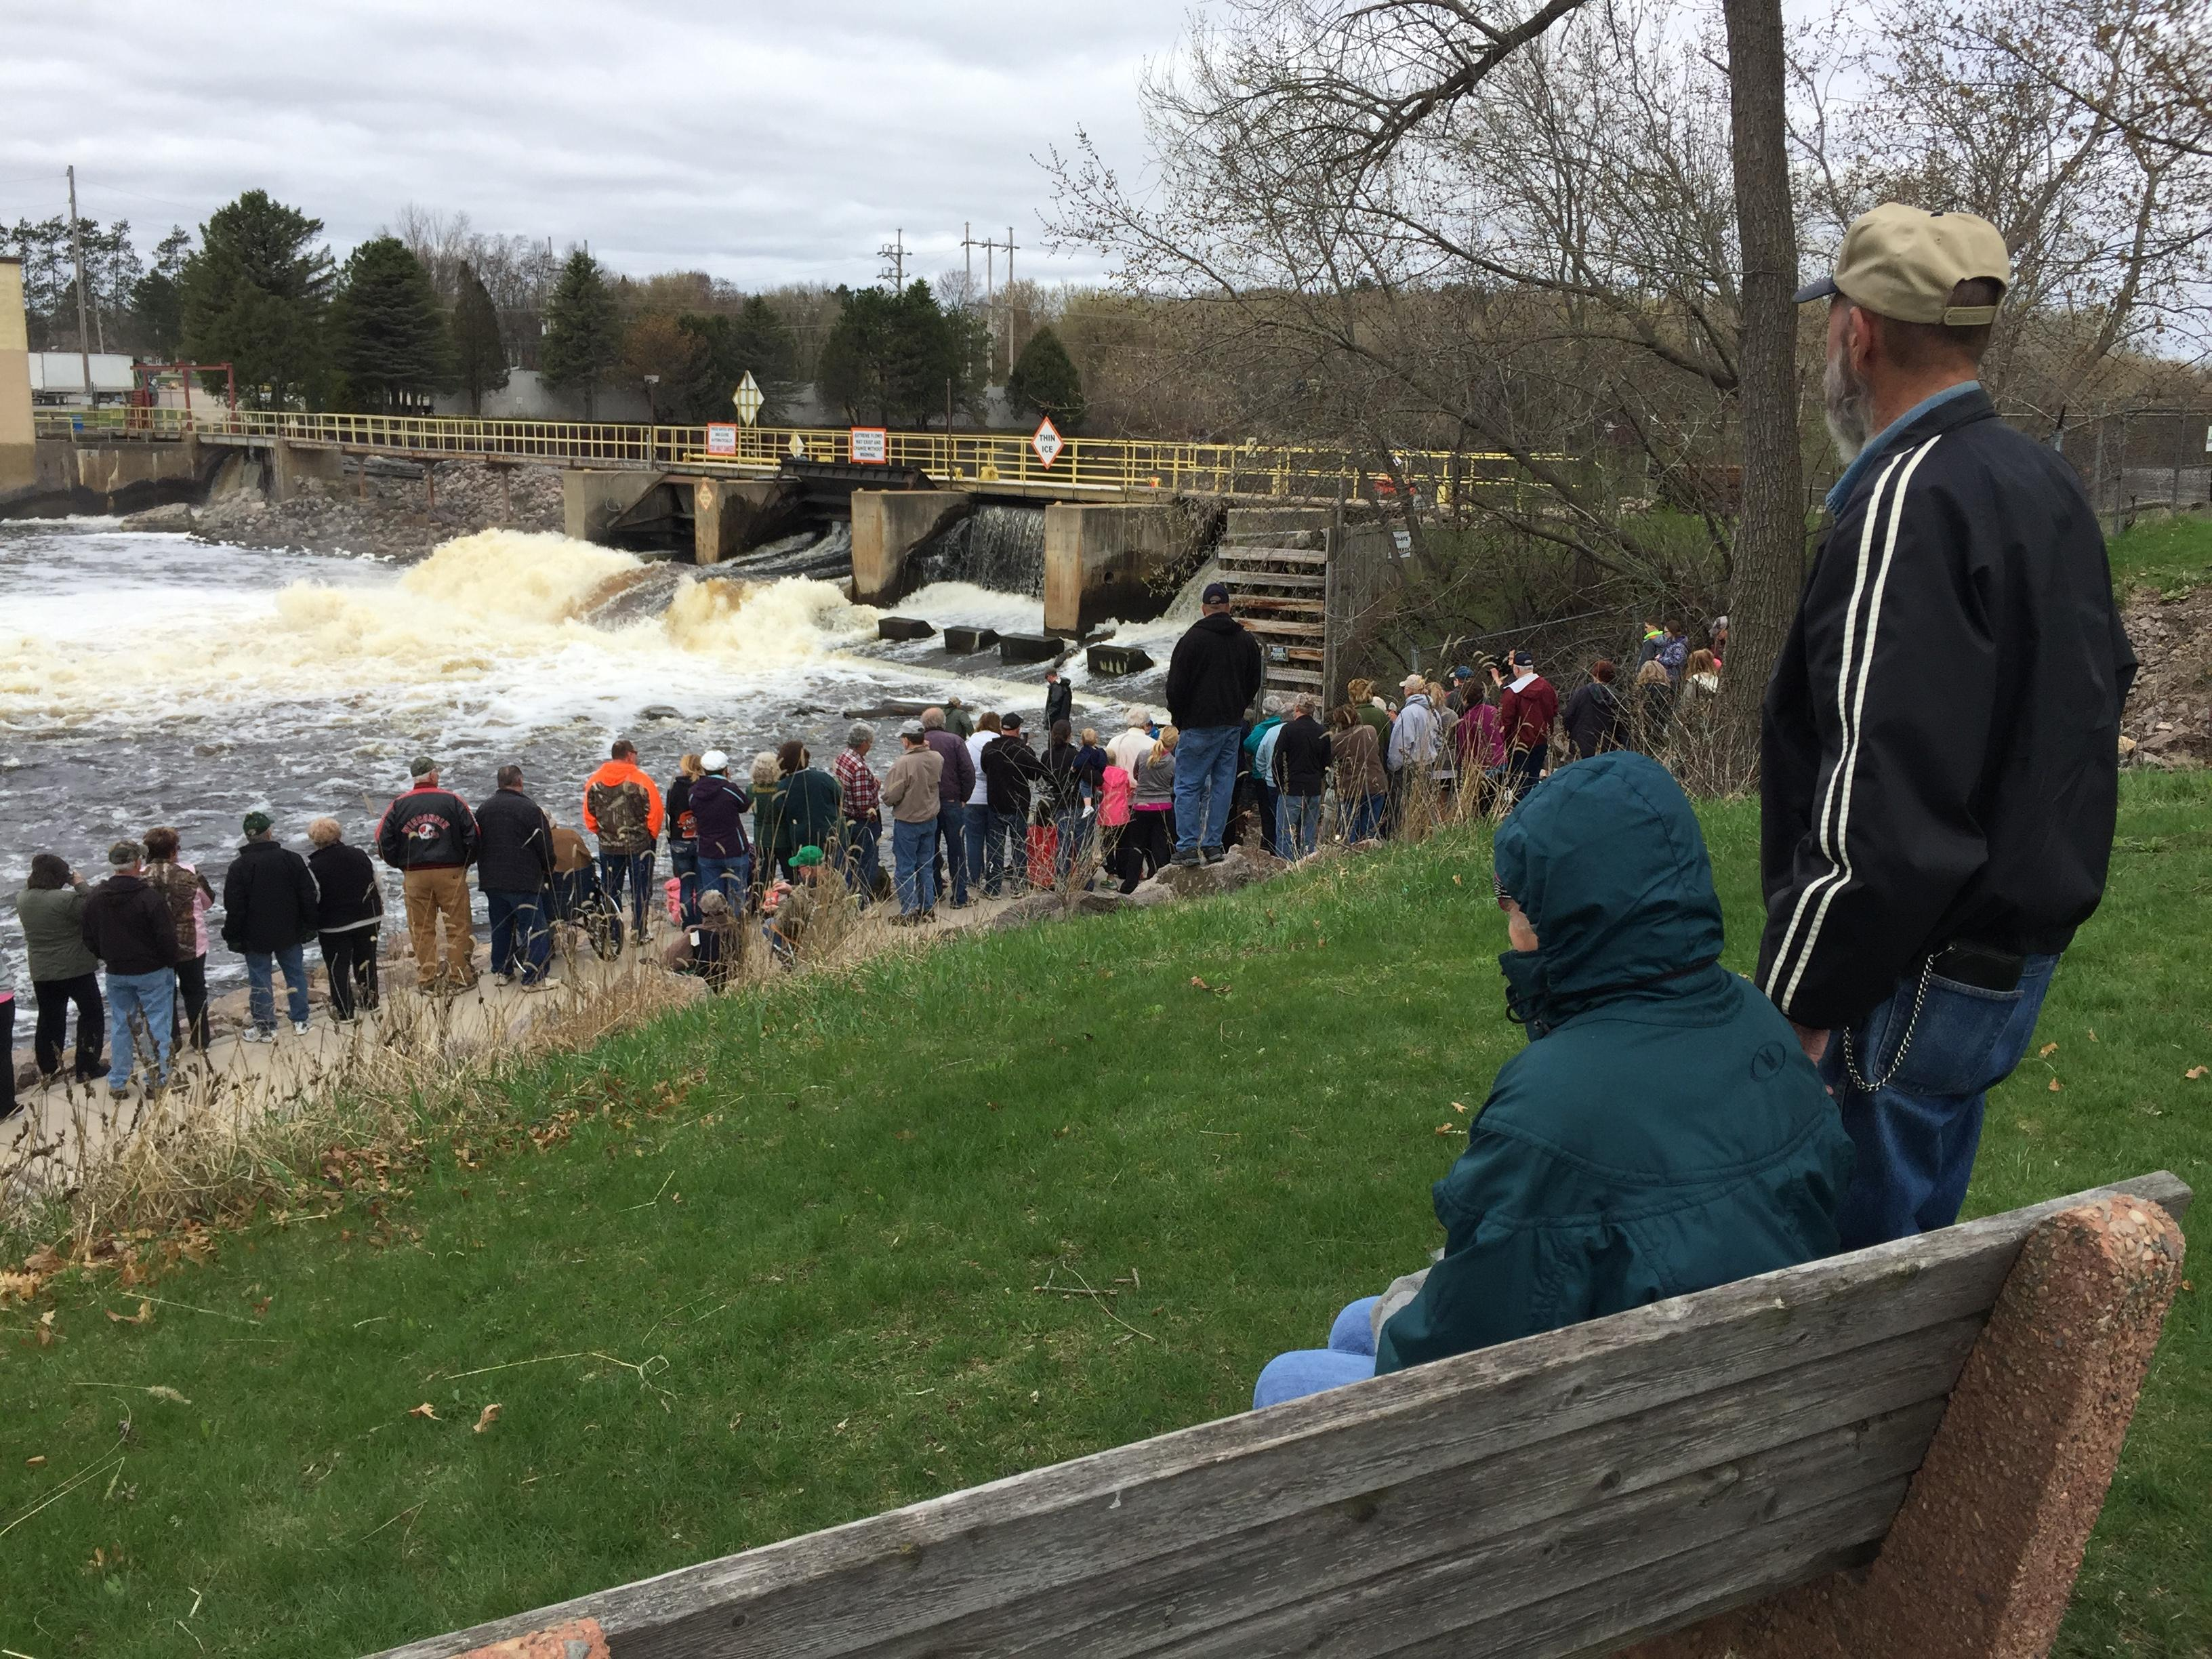 Sturgeon watching at Shawano Dam, April 19, 2017 (WLUK/Eric Peterson)